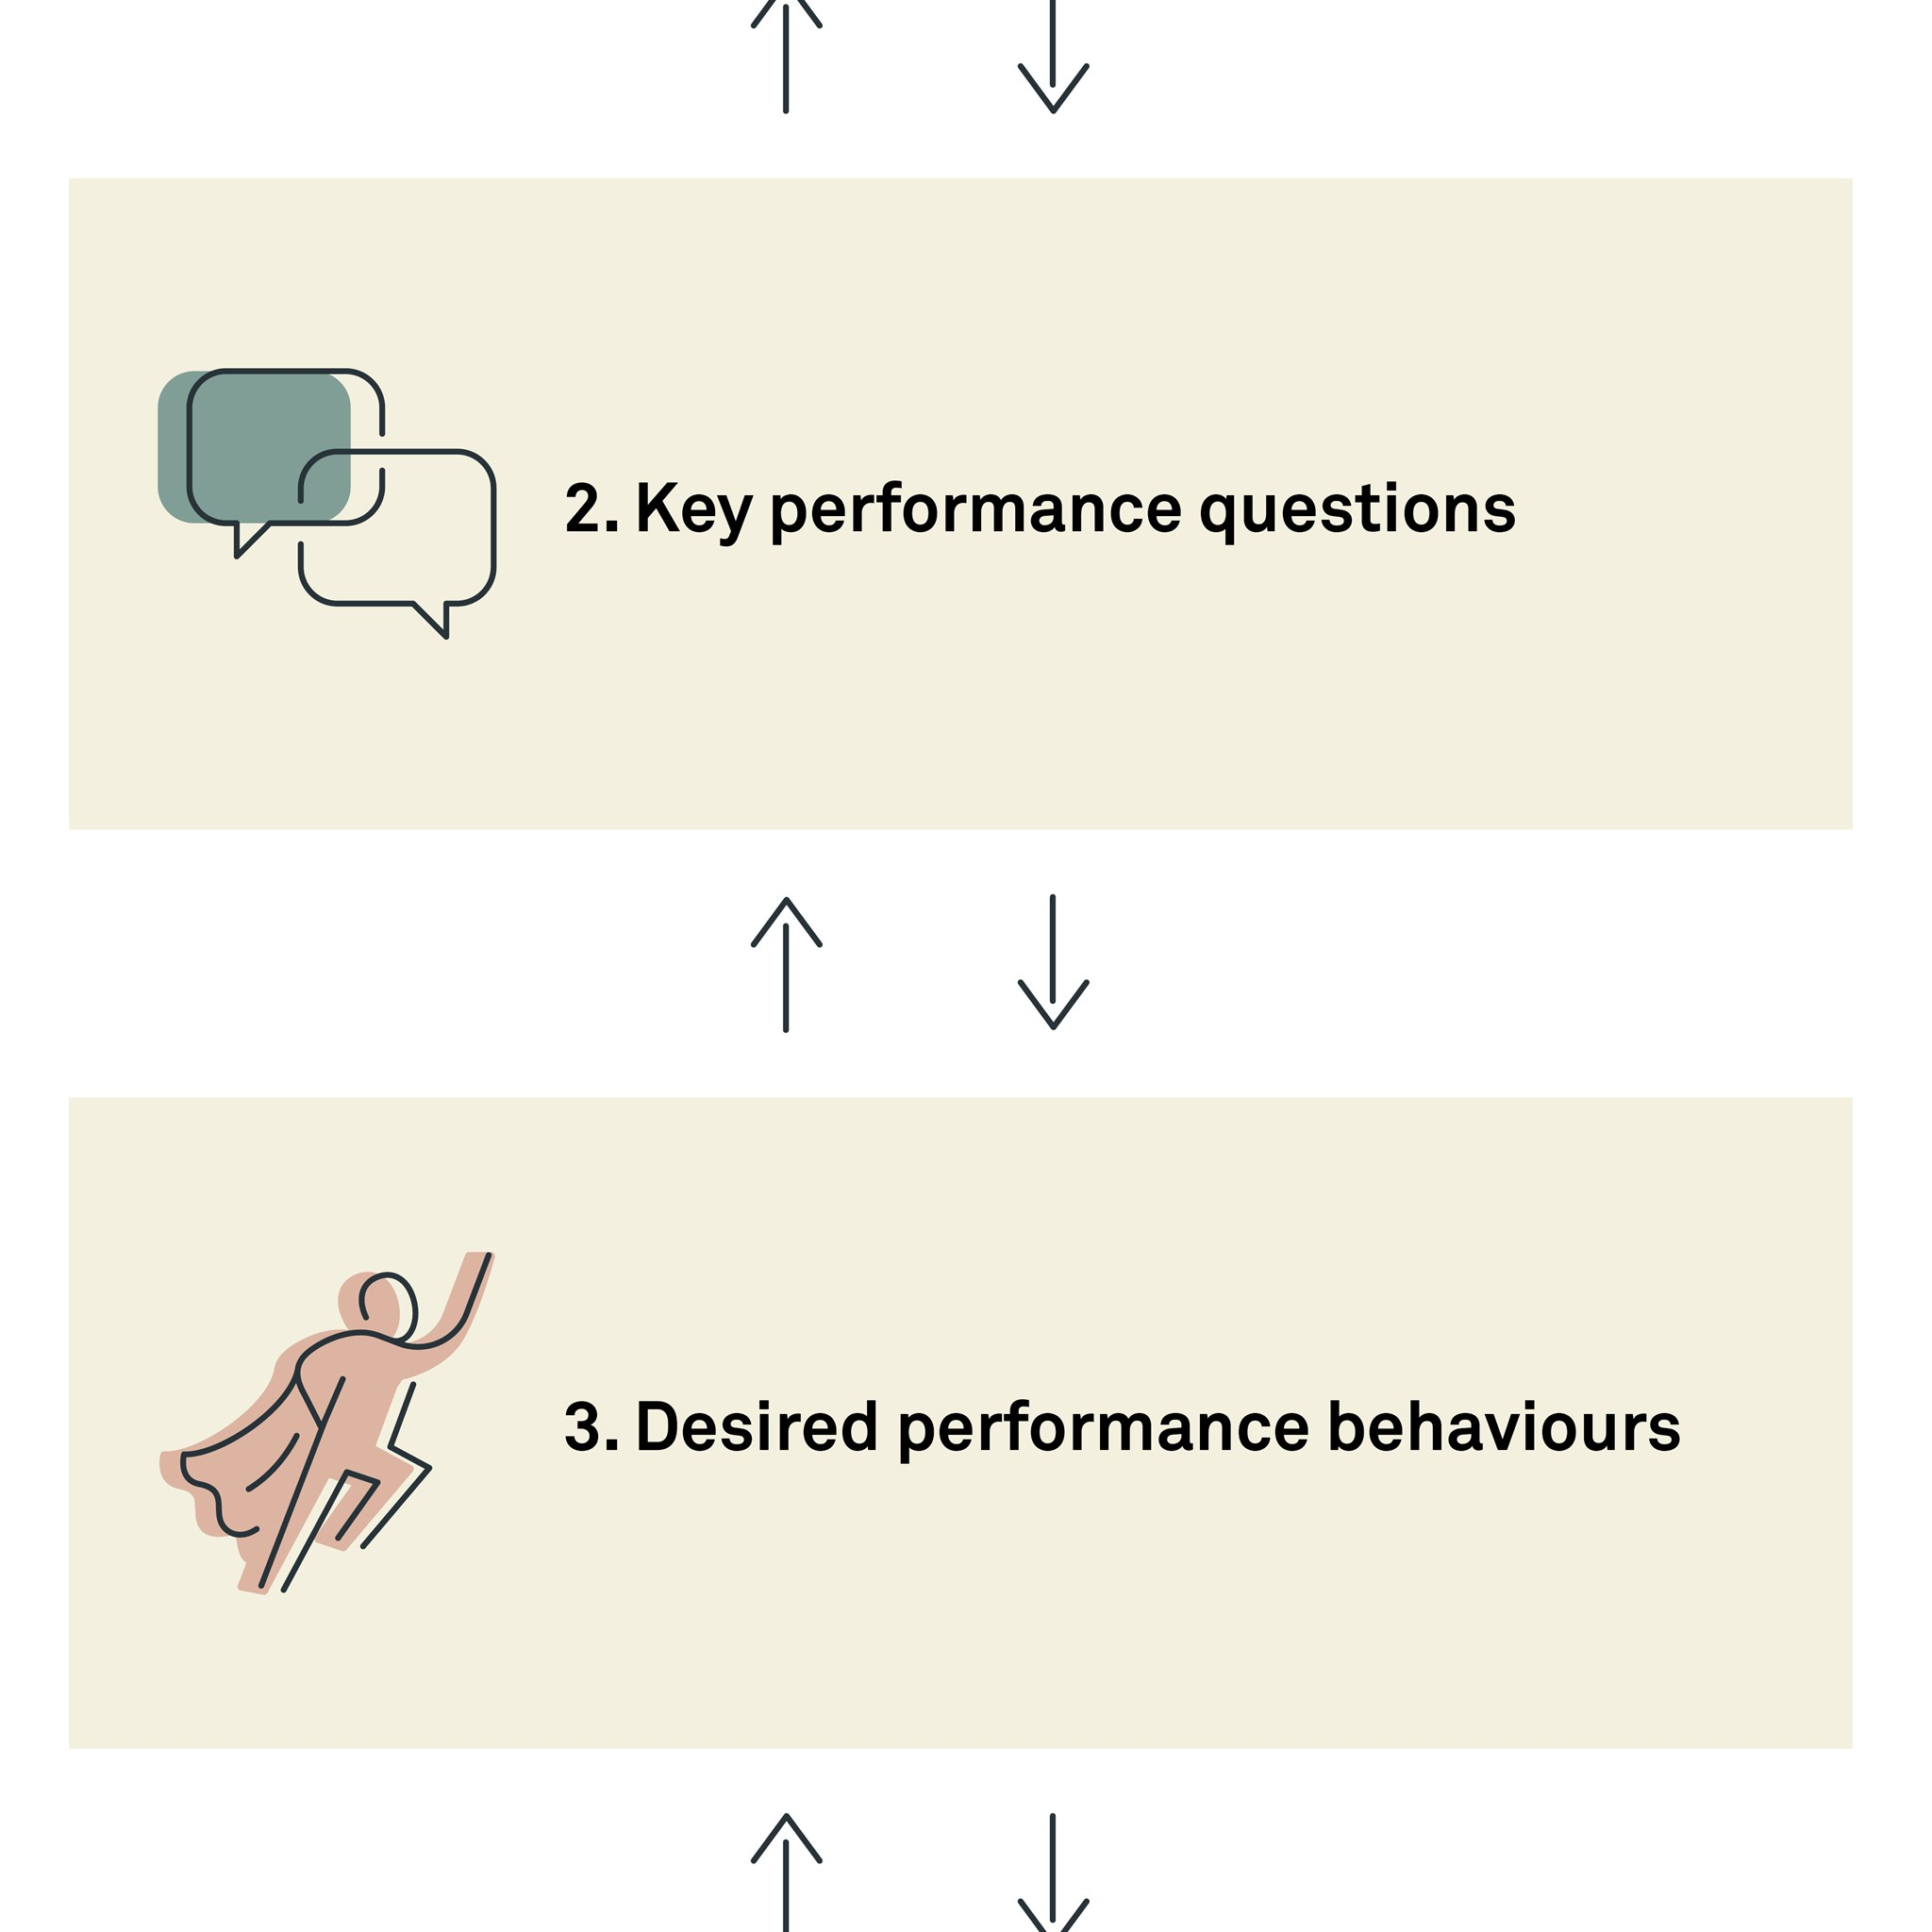 Behavioural performance metrics